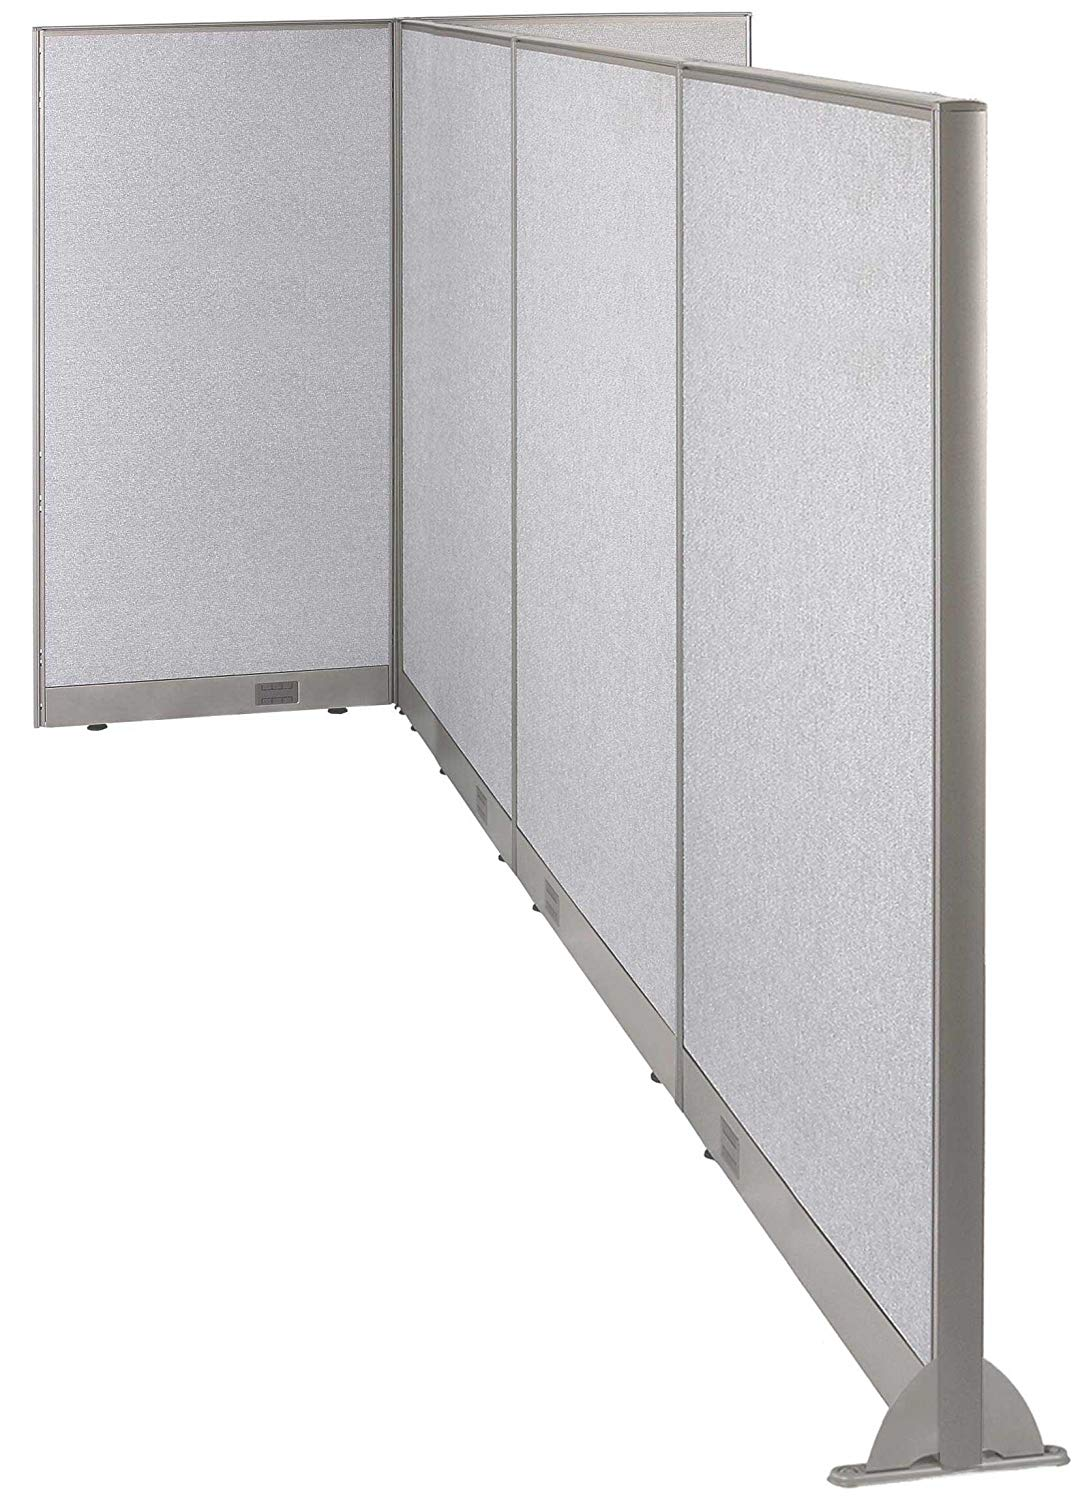 GOF T-Shaped Freestanding Partition 120d x 60w x 48h/ Office, Room Divider … (120d x 60w x 72h)